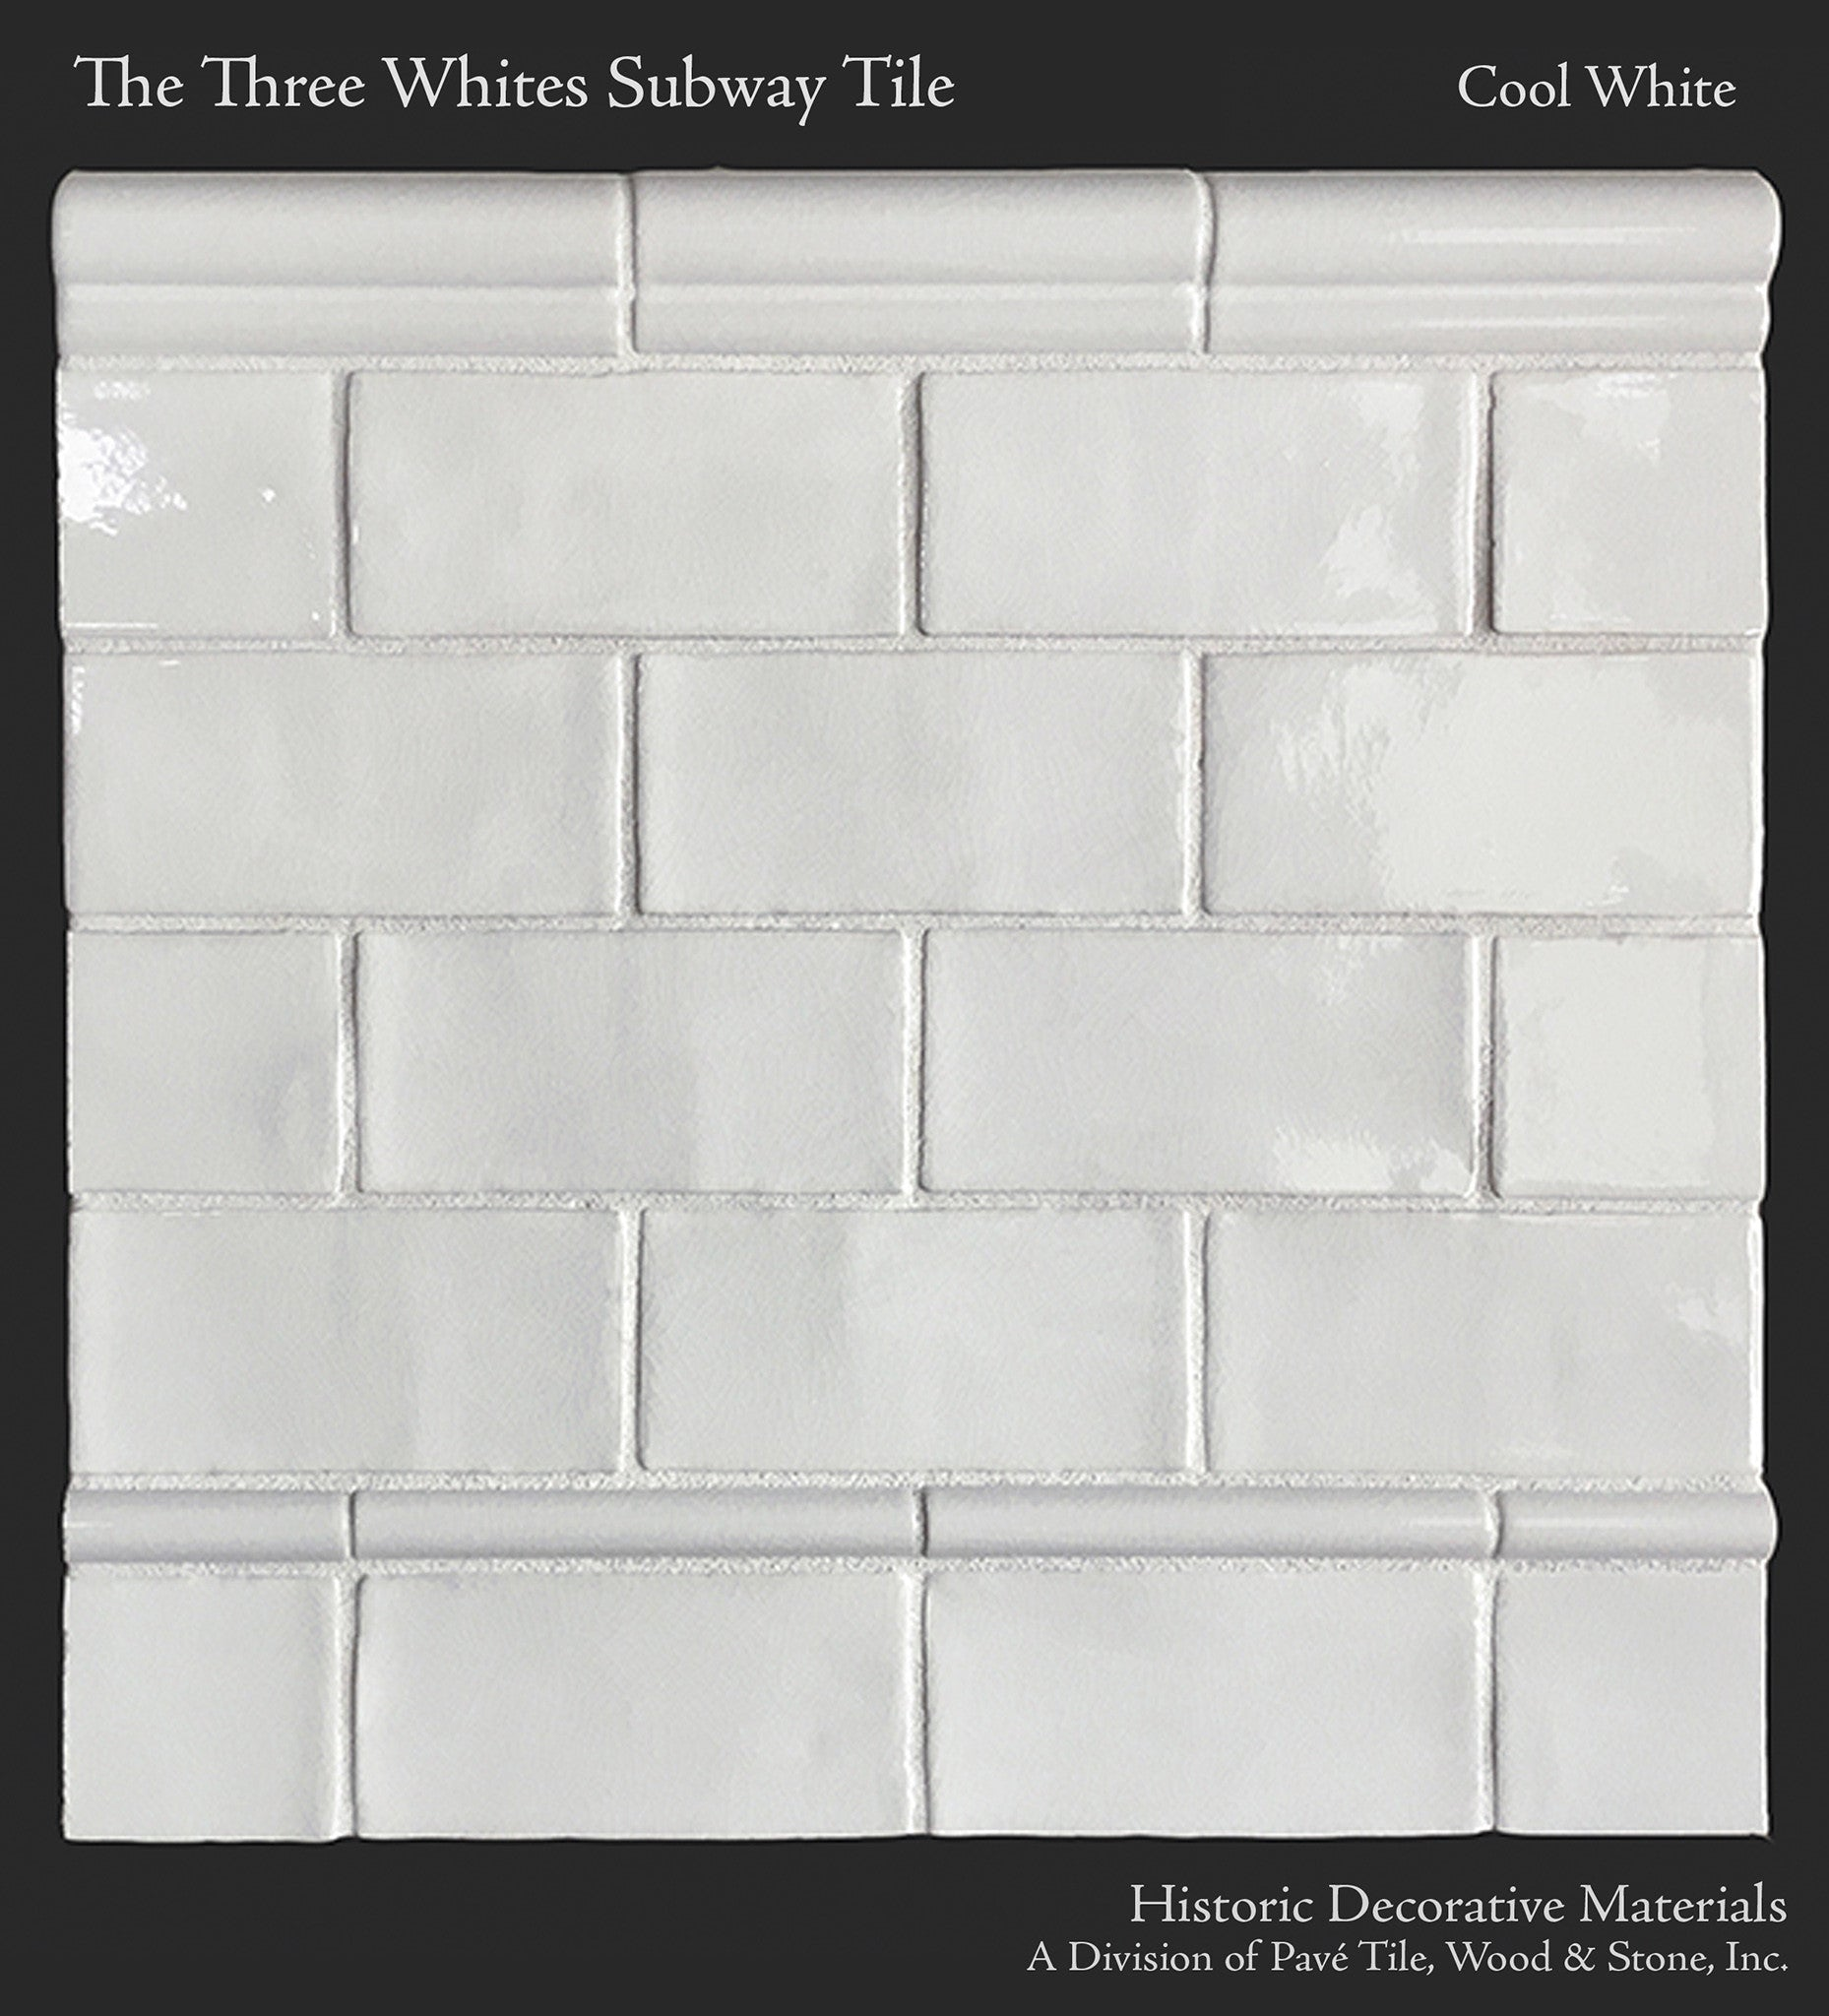 Ceramic Glazed 3 X 6 Subway Tiles For Kitchen Back Splash And Bathrooms Historic Decorative Materials A Division Of Pave Tile Wood Stone Inc